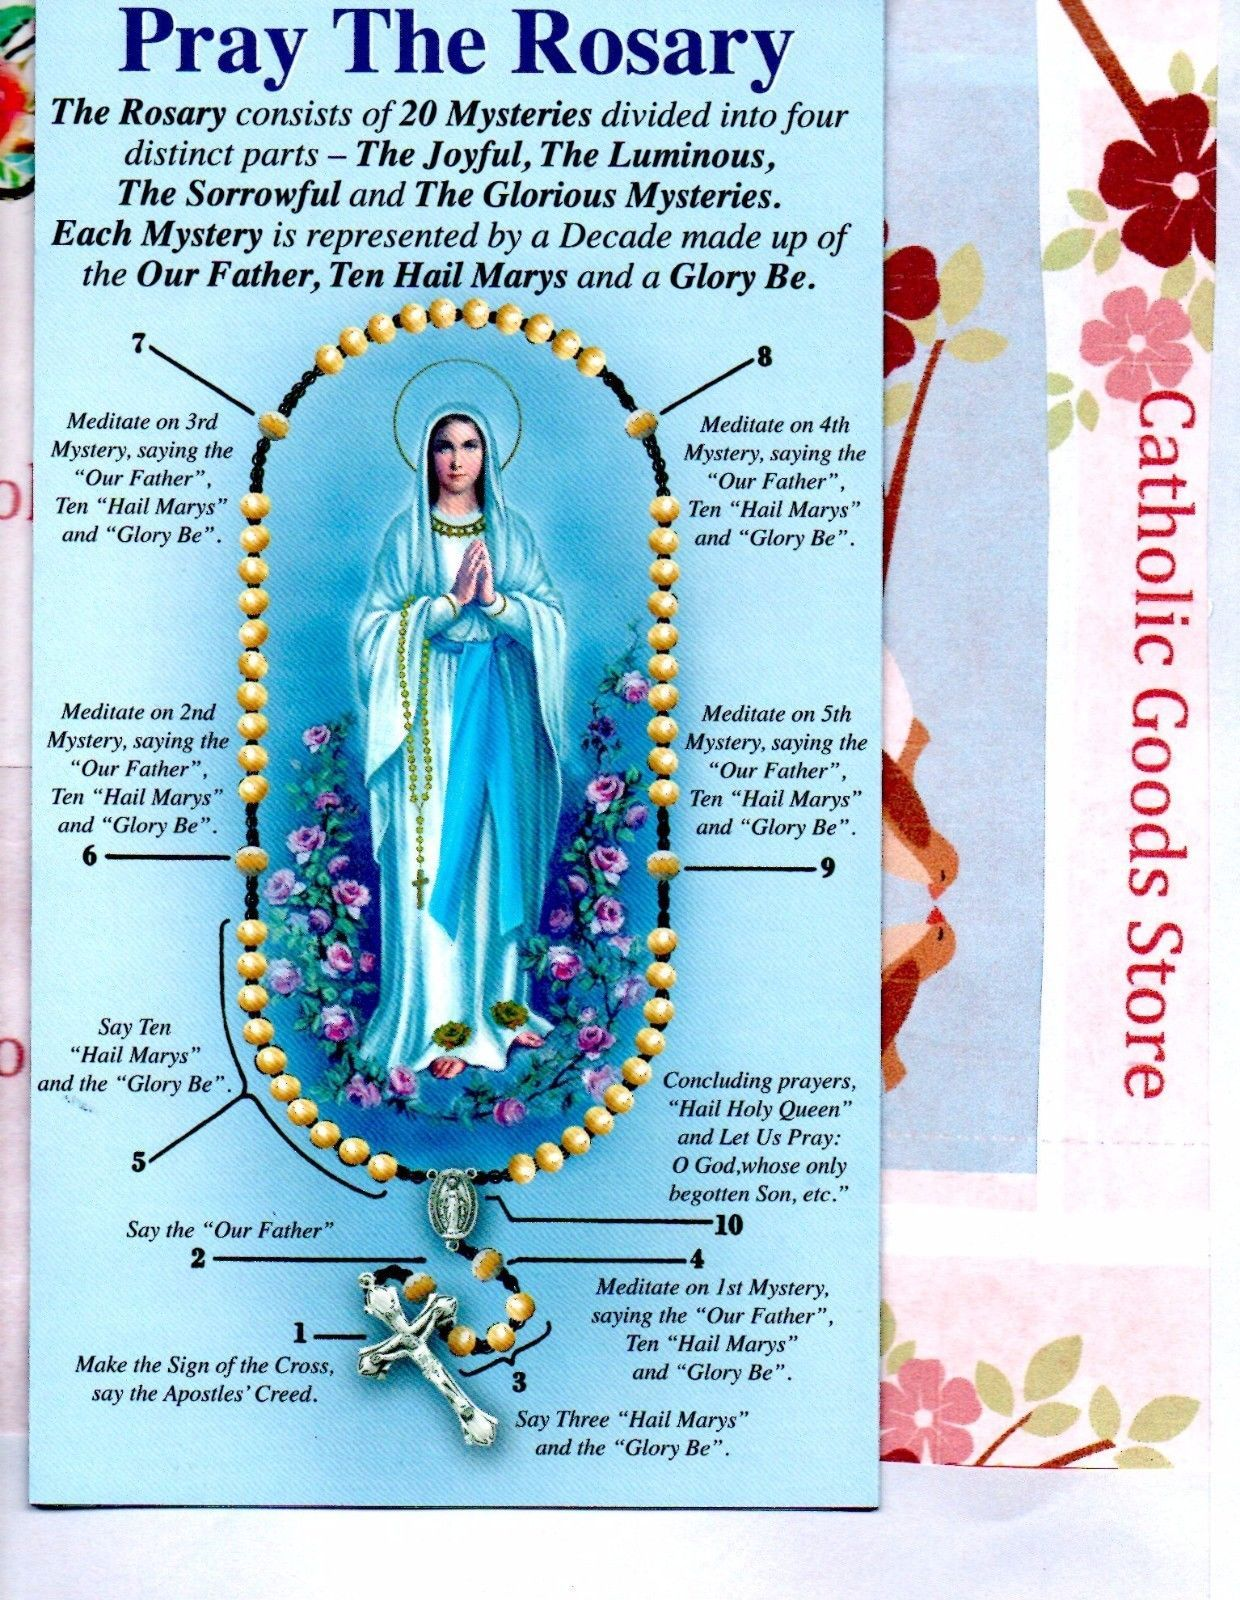 photo about How to Pray the Rosary Printable Booklet titled Pray the Rosary Pamphlet Involves All 4 Mysteries - English